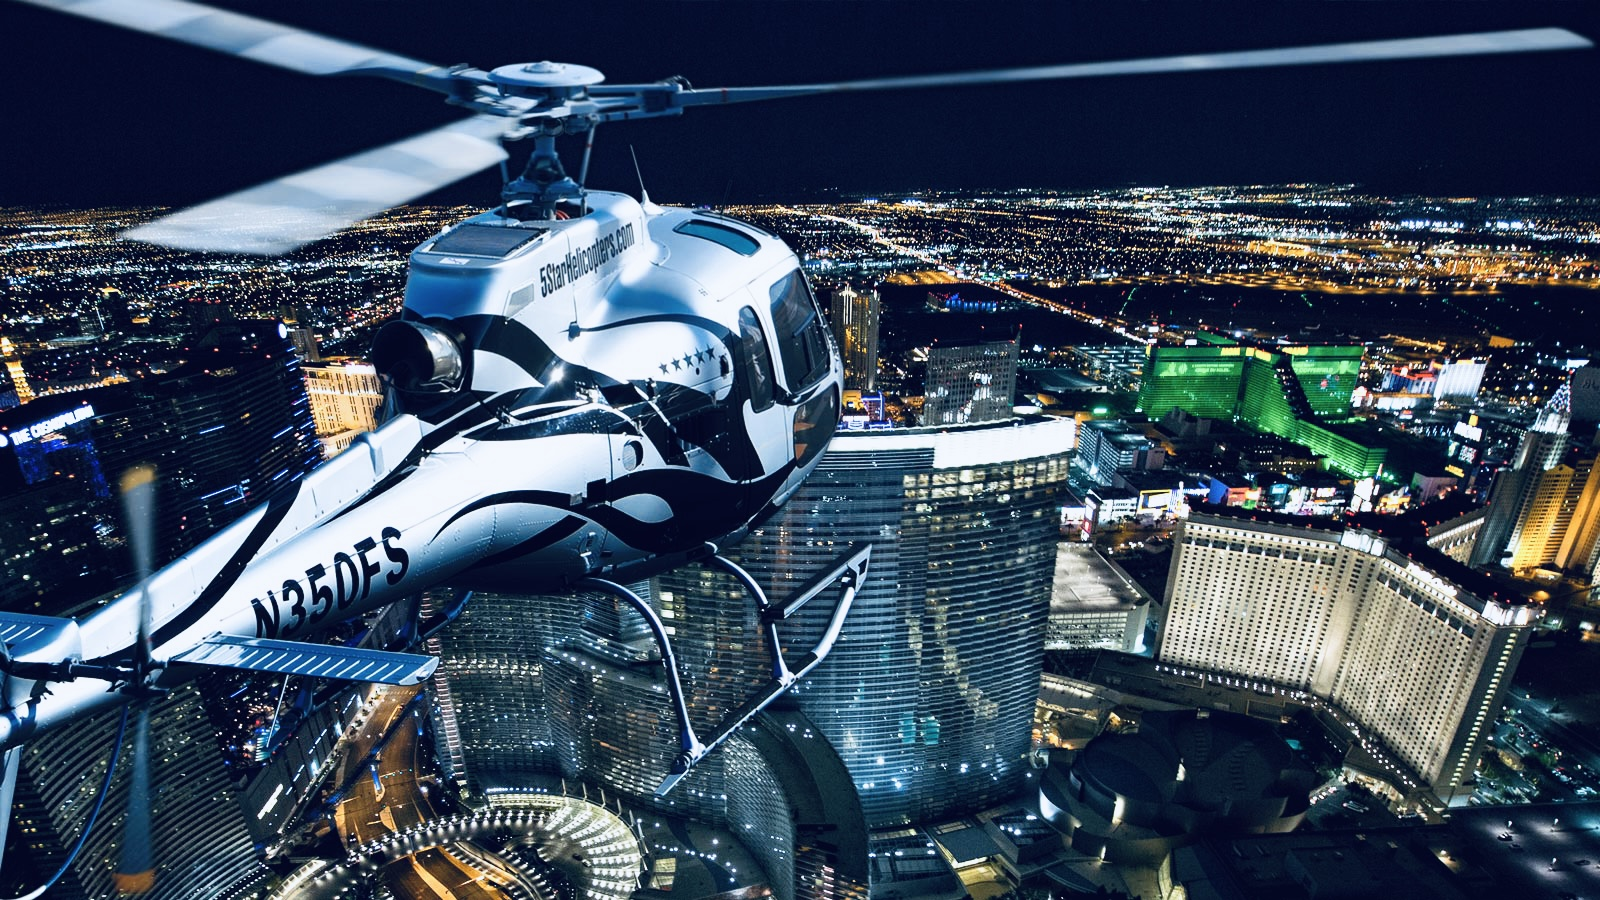 Private Helicopter Tour Service In Atlanta Is Atlanta's Leading Air-Tourism Service Providers